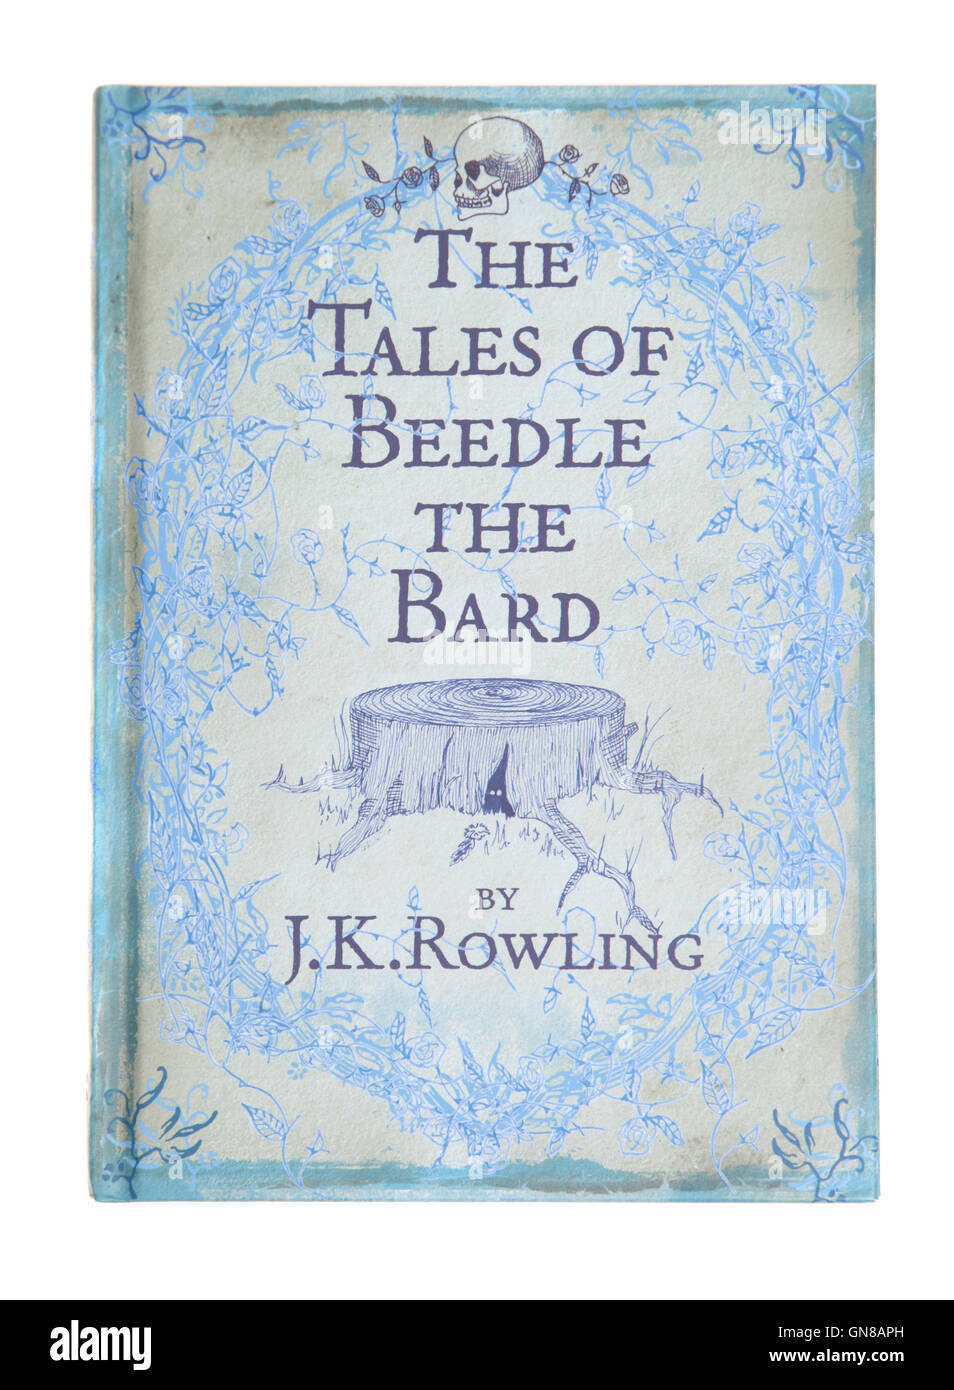 The Tales of Beedle the Bard - Stock Image